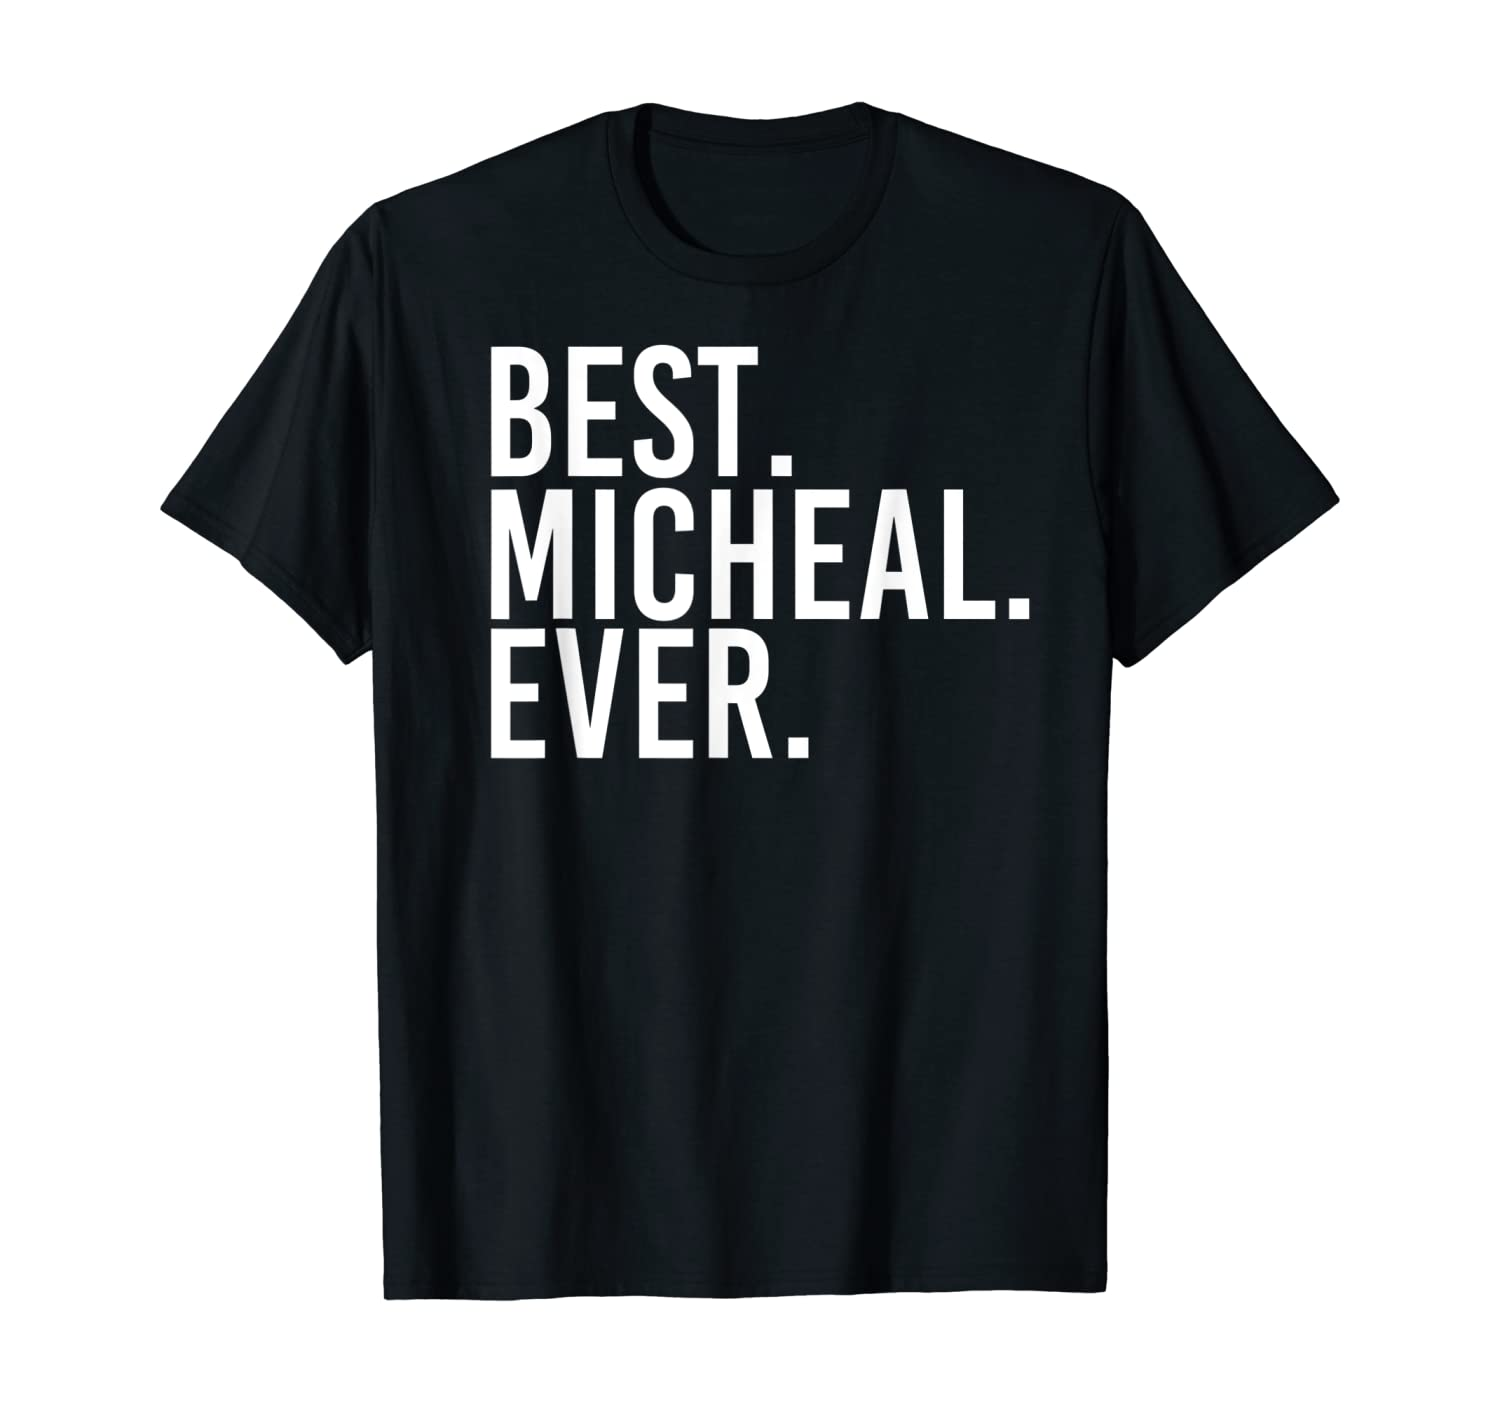 BEST. MICHEAL. EVER. Funny Men Father's Gift Idea T-Shirt